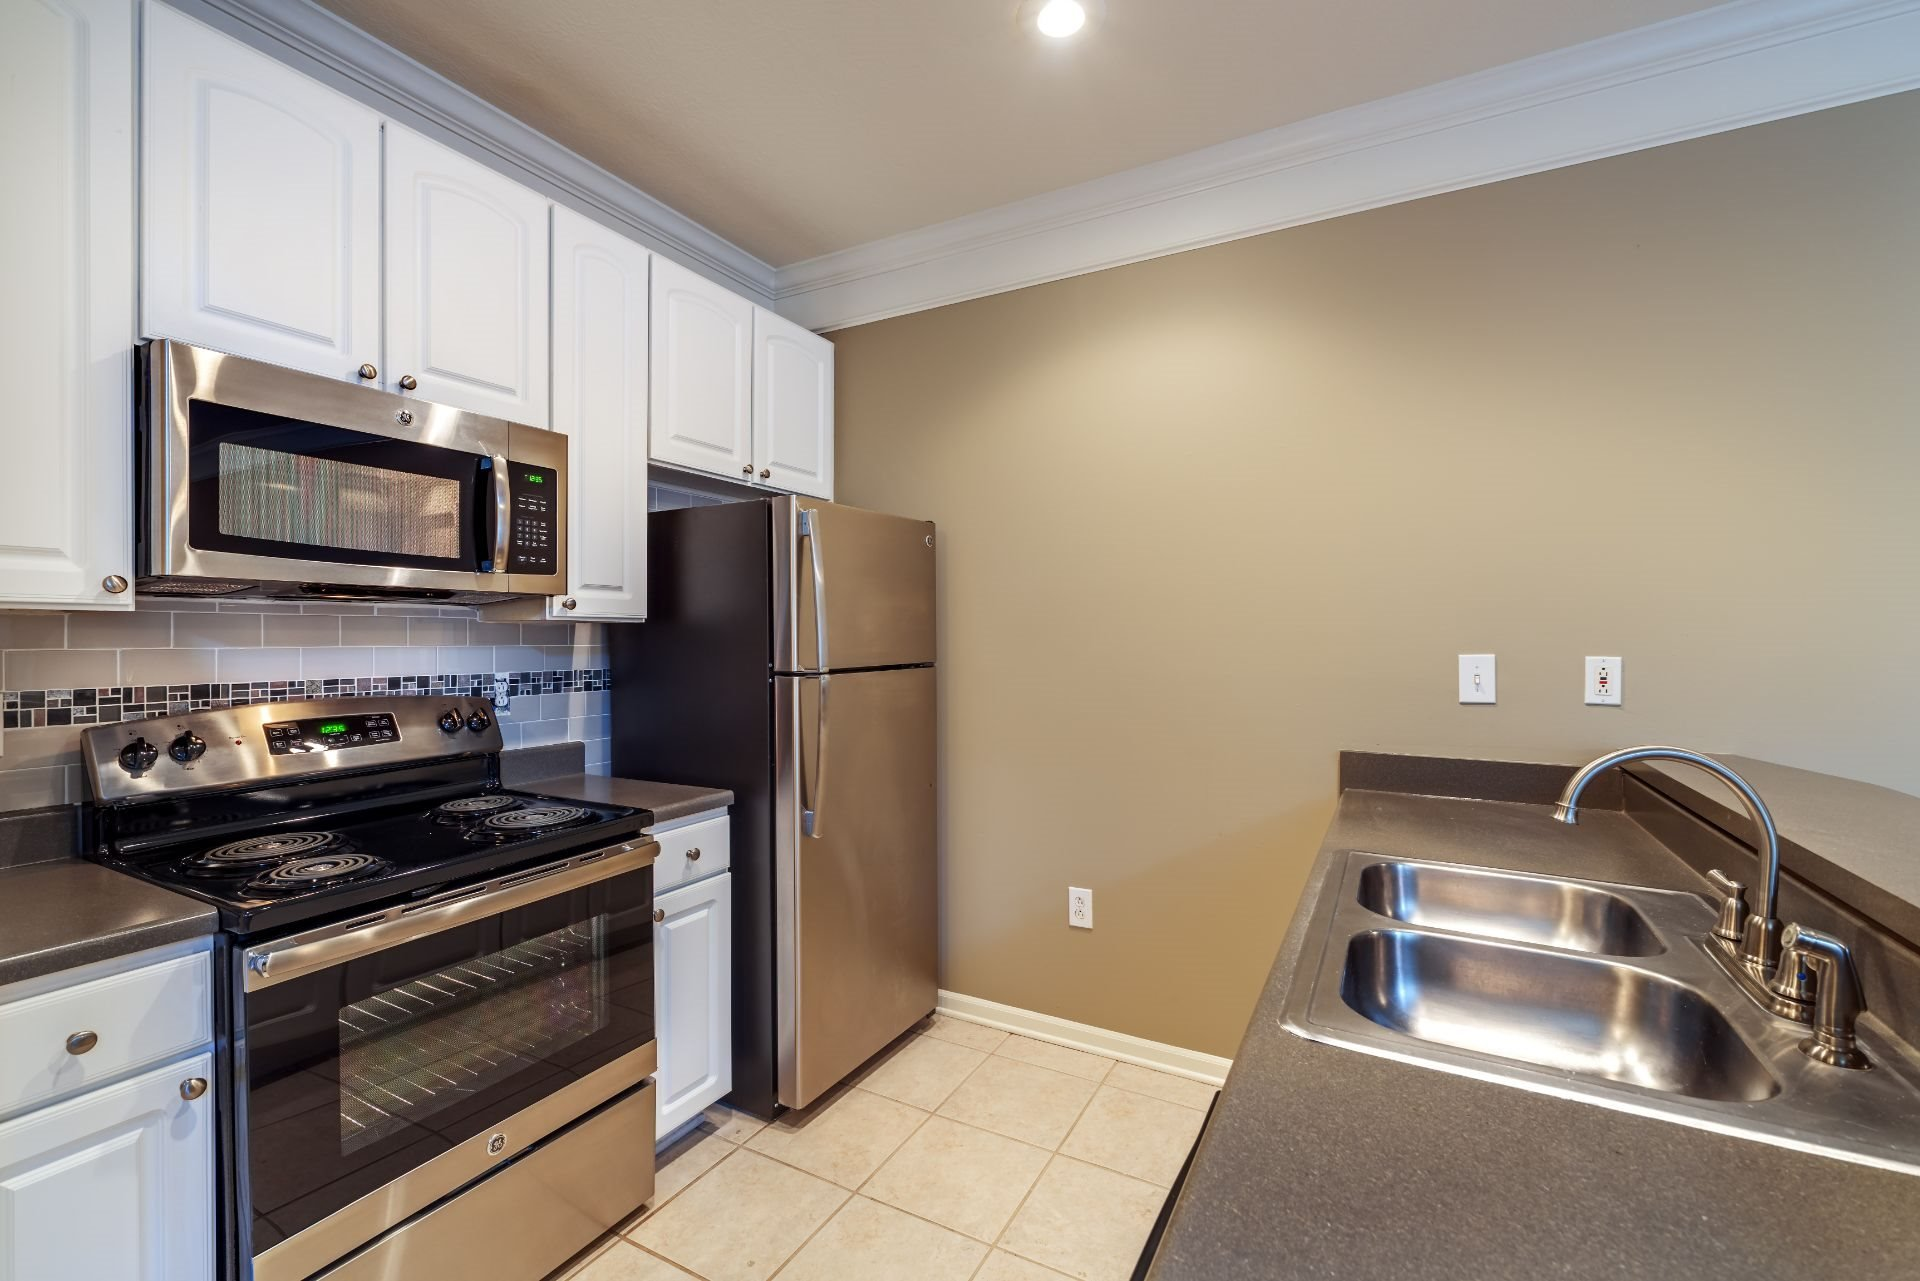 Luxury Waterfront 1, 2 and 3 Bedroom Apartments and Townhomes with Gourmet Kitchens with Stainless Appliances,  Balconies and River views,  611 E. Waterfront Drive, Munhall, PA 15120